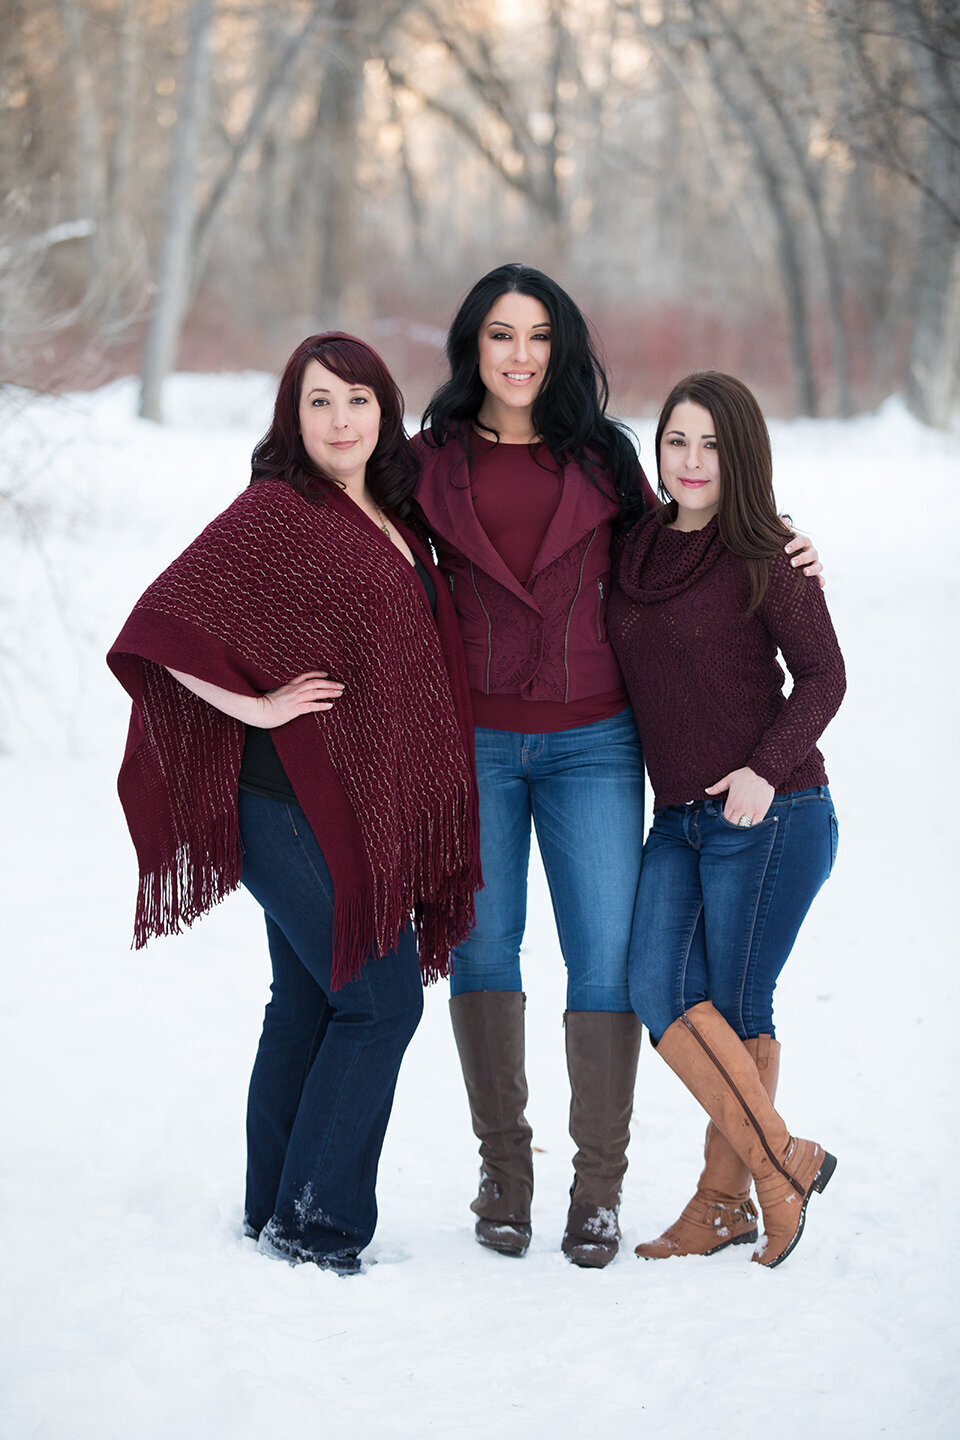 three sisters in maroon shirts, blue jeans and boots  in the snow, located at river front park in the winter. family pictures photographed in billings mt